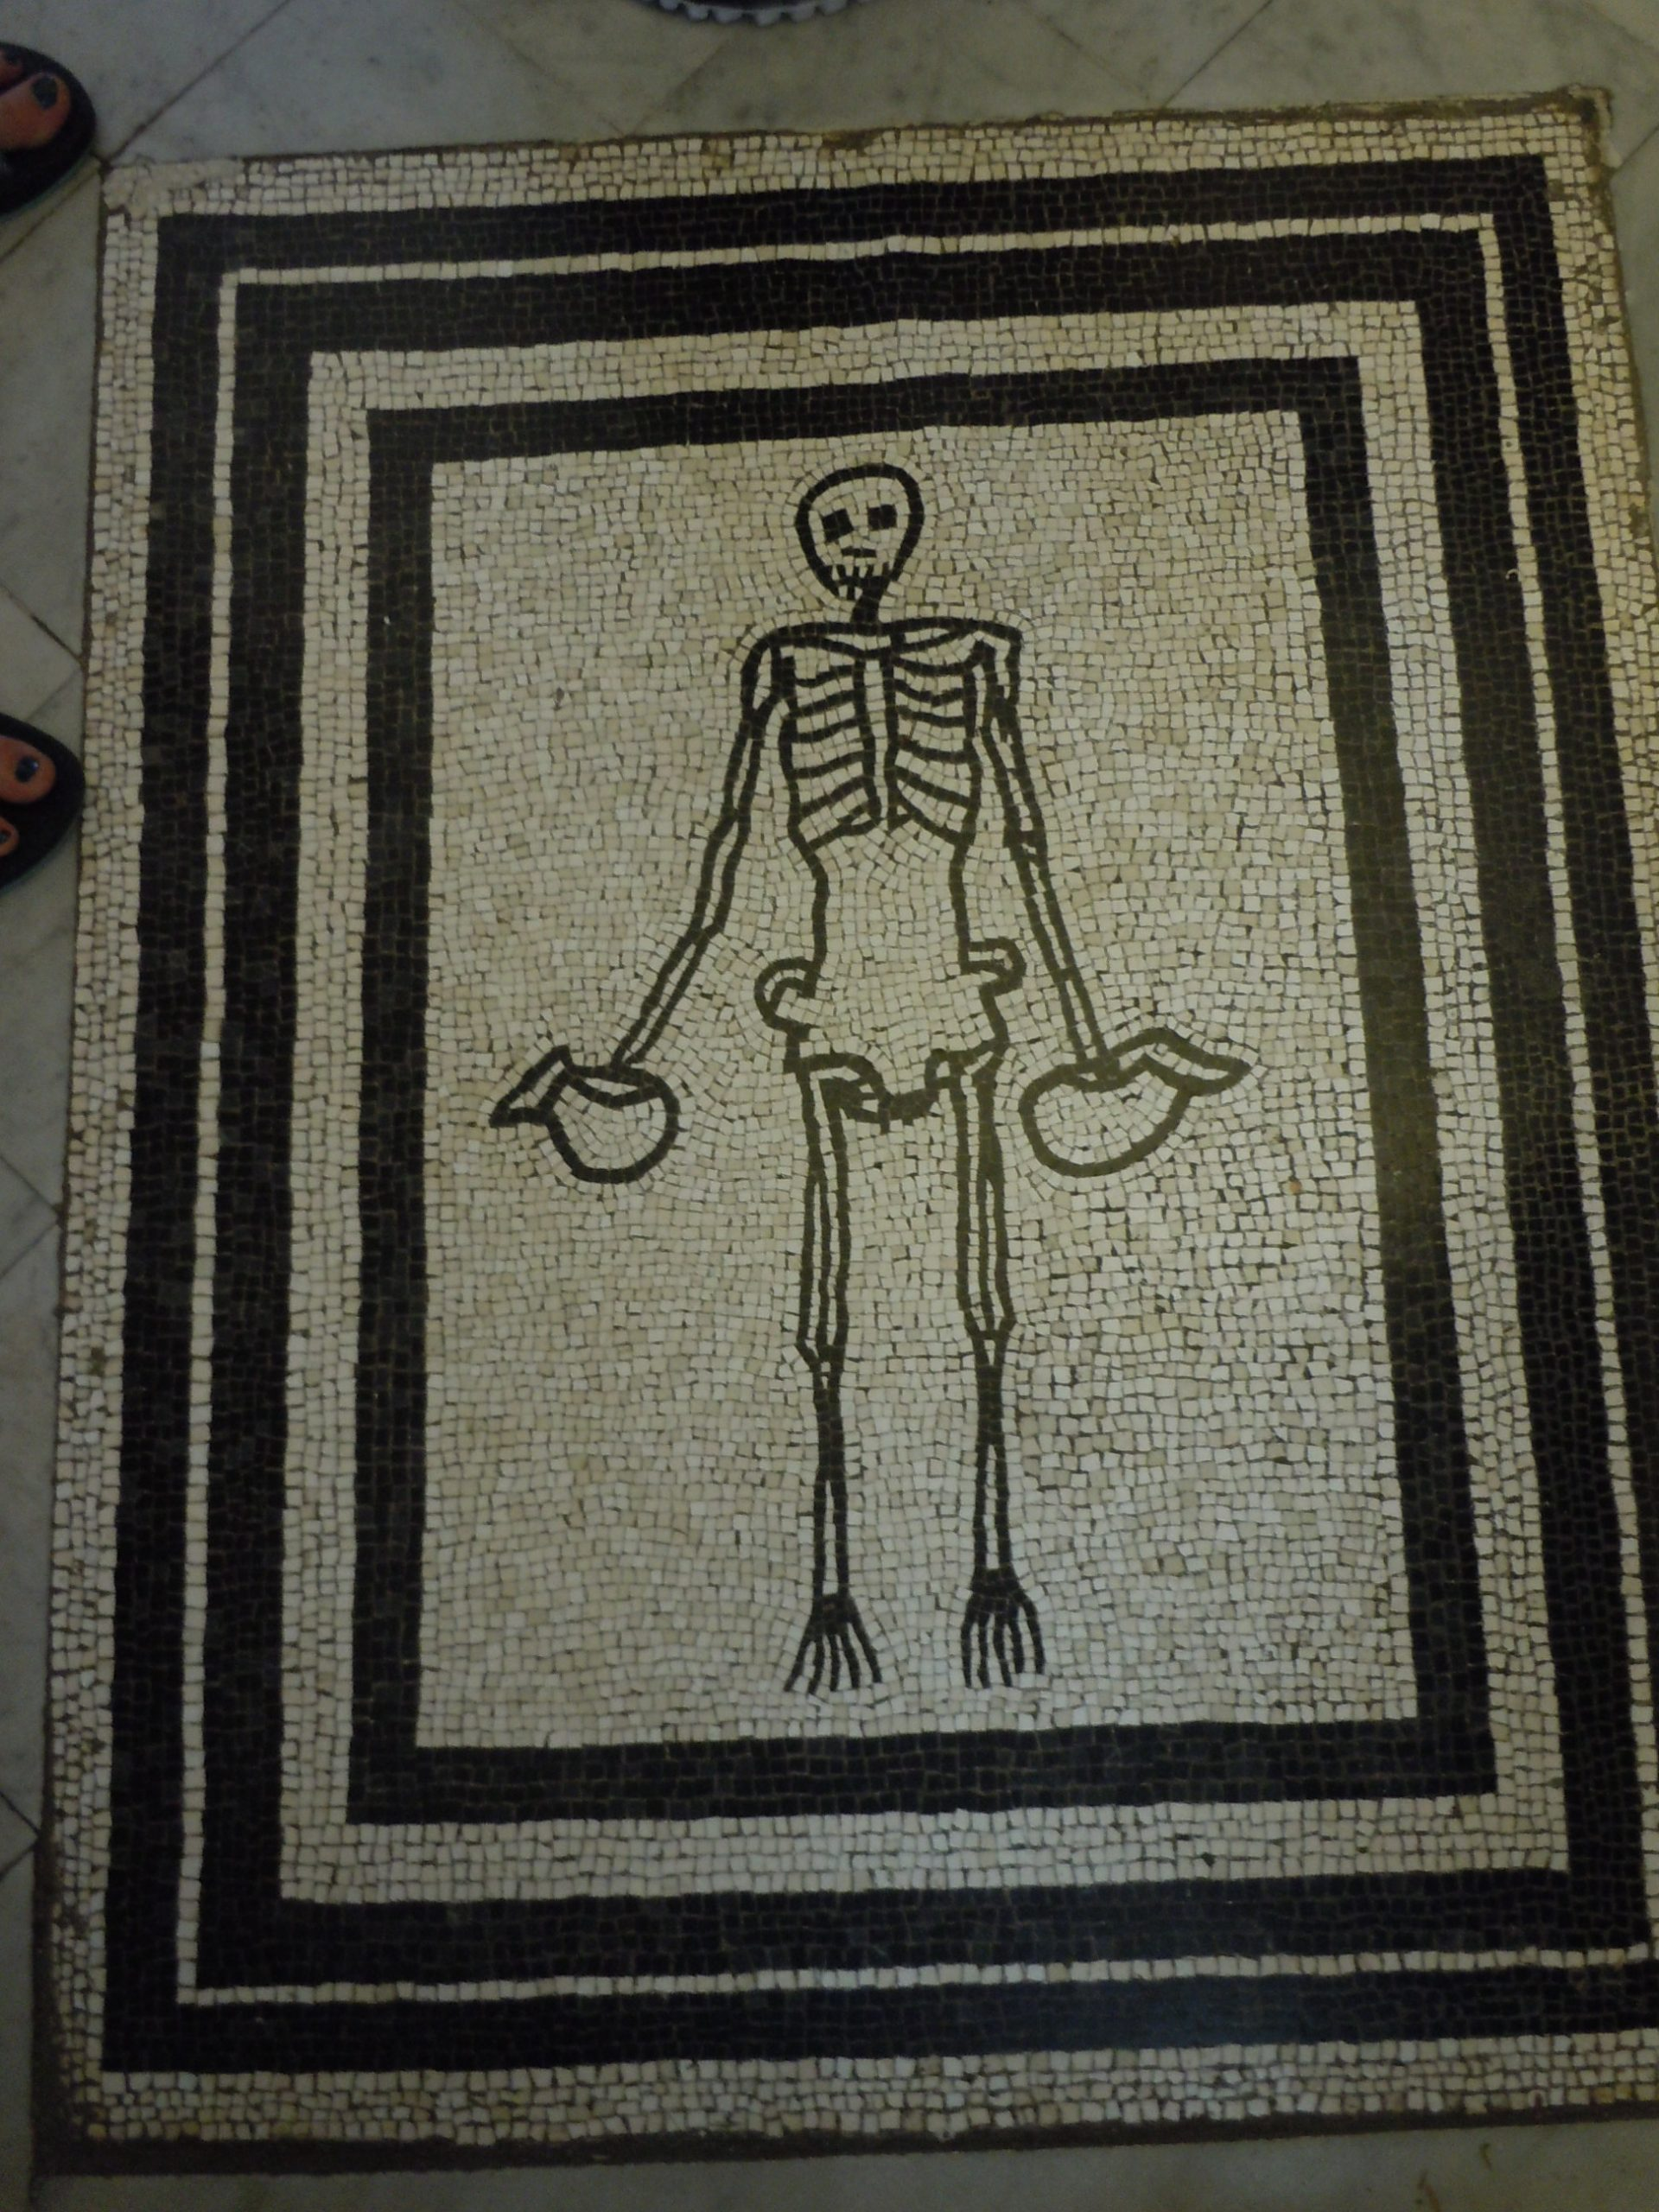 mosaic fro Pompei: enjoy life while you can,  Death is always lurking around the corner